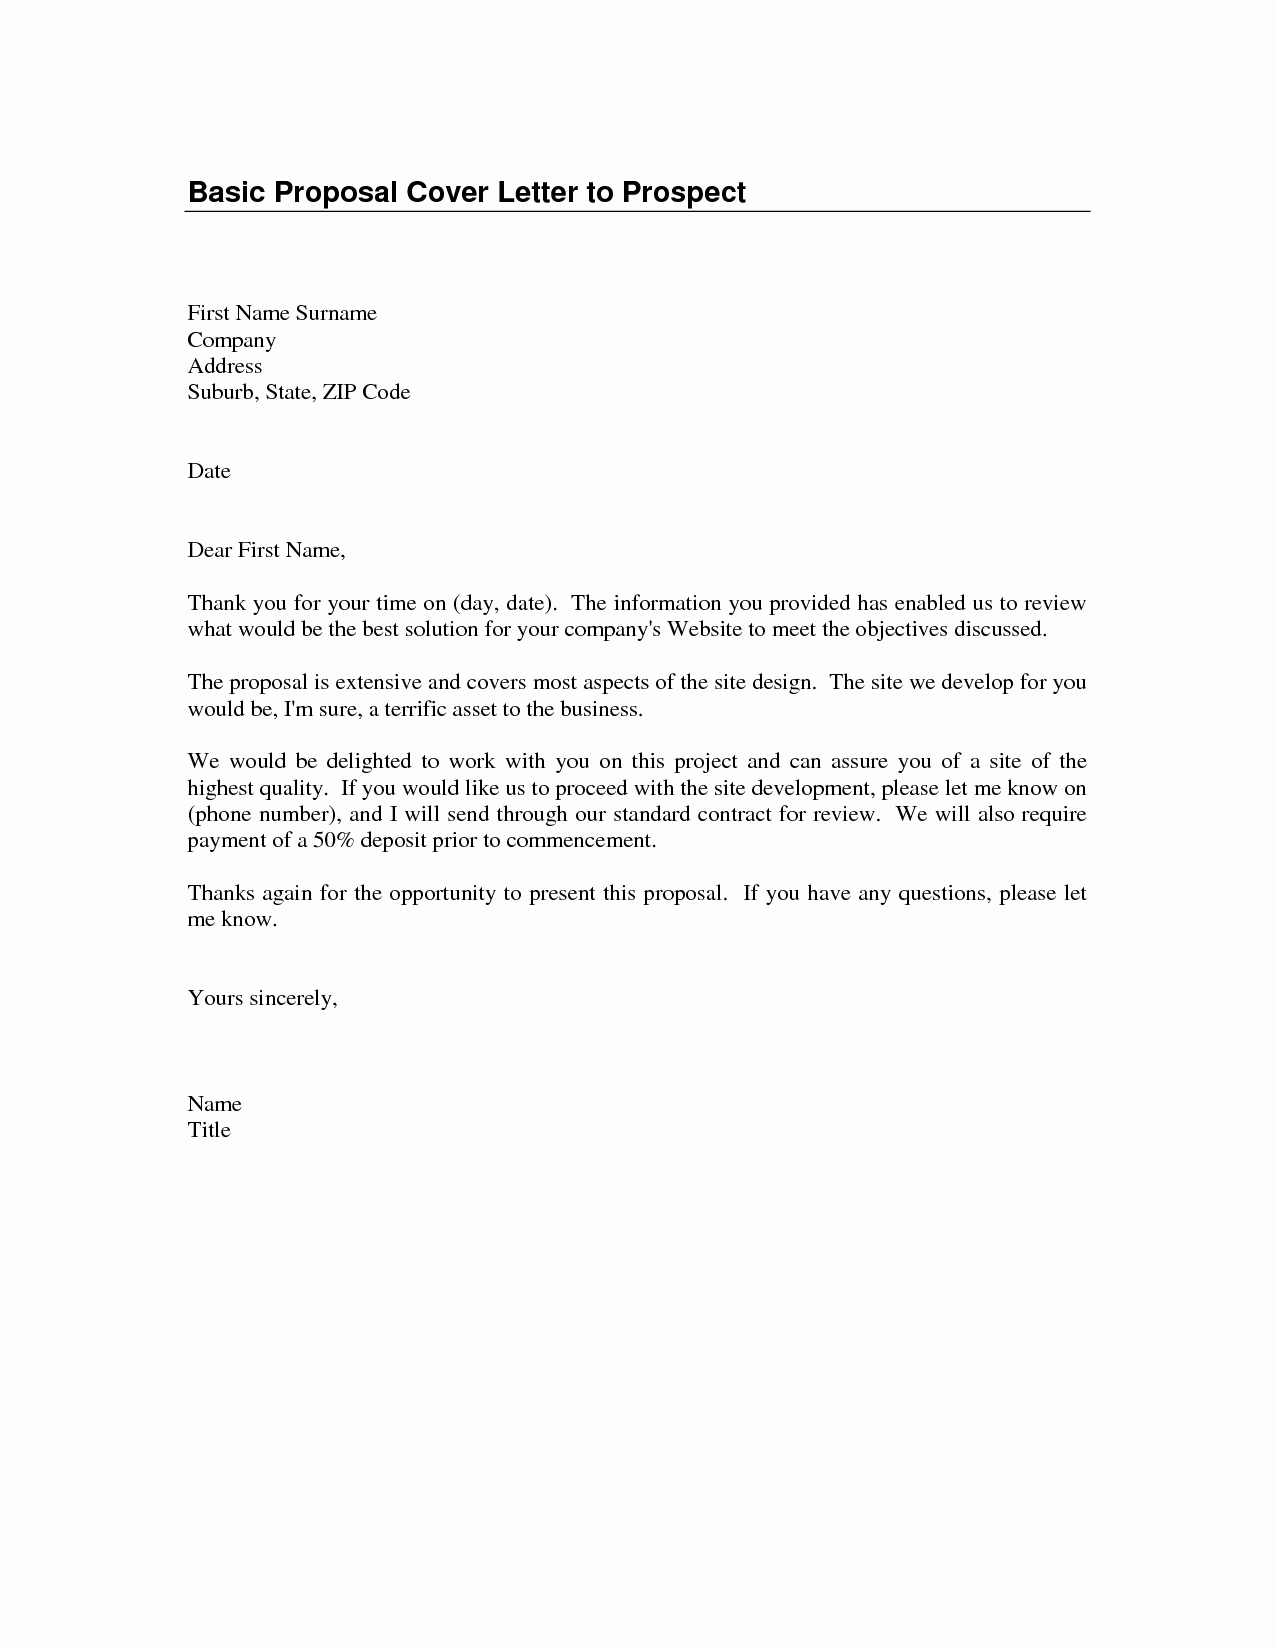 Simple Cover Letter Template Word Lovely All Cover Letter Samples for Professionals